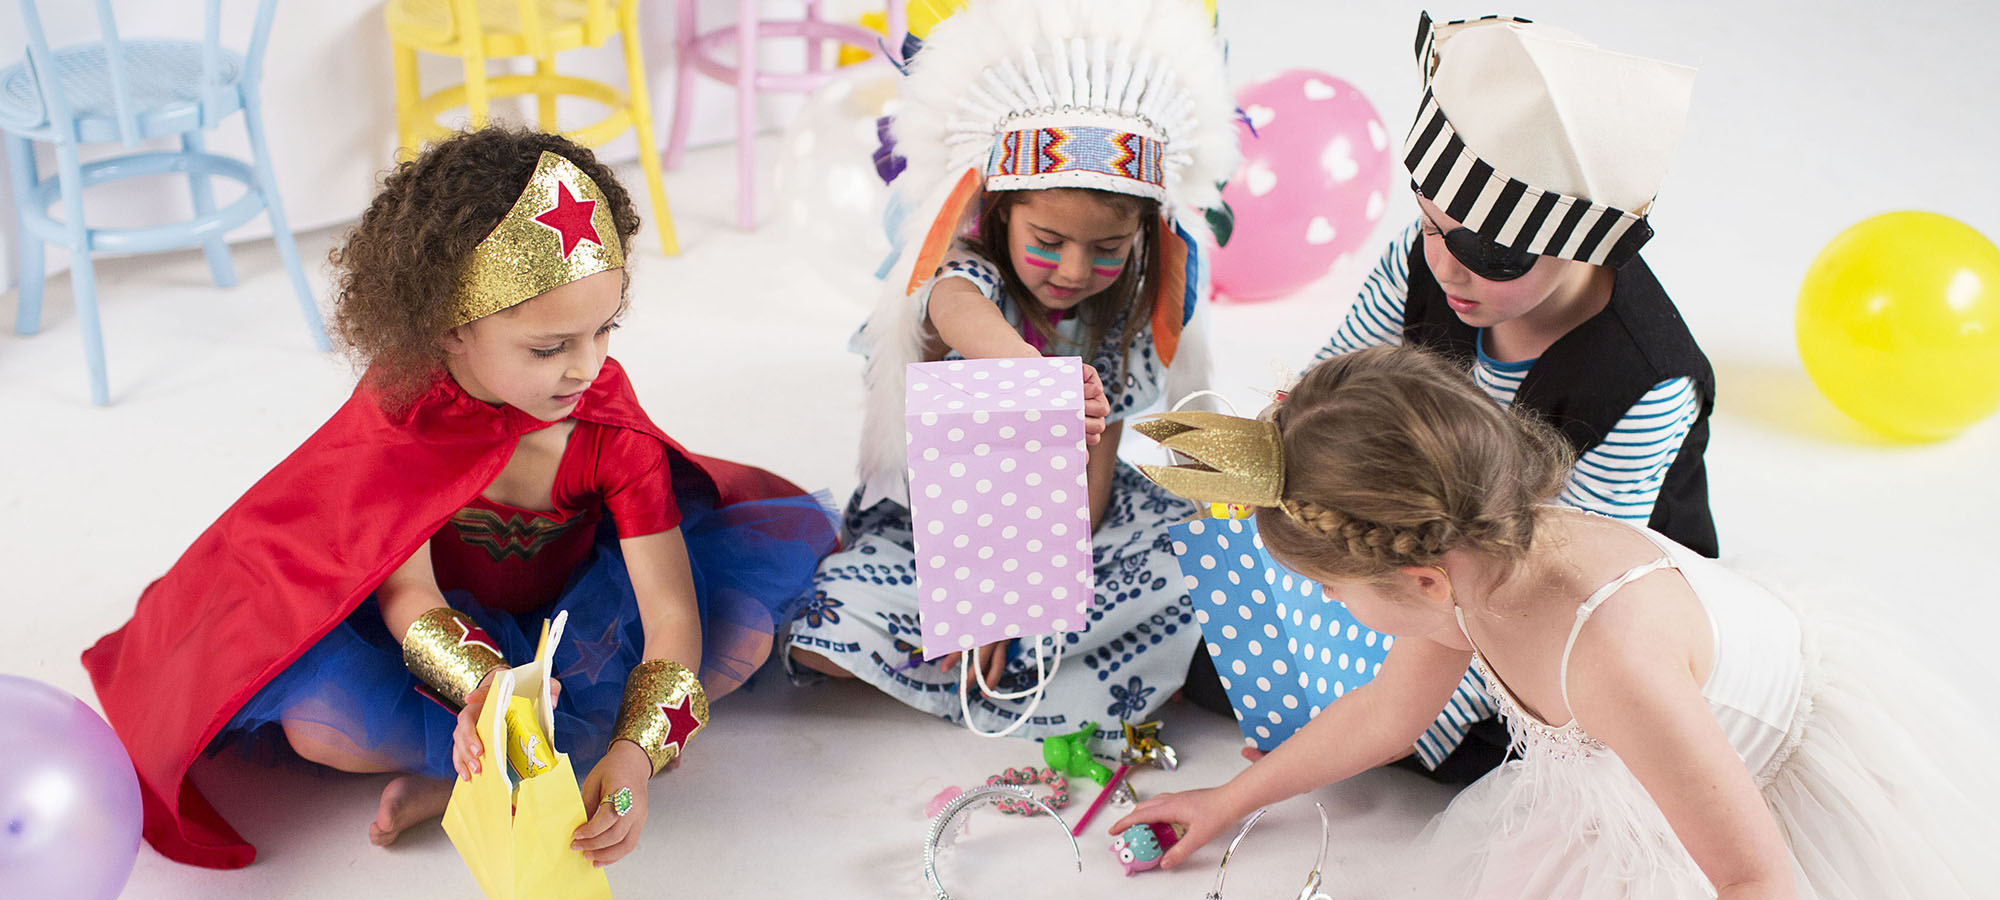 Every childs birthday party needs party bags so your guests will want to leave. Shop our awesome collection here now. Fast Delivery & Daily Dispatch Mon-Fri